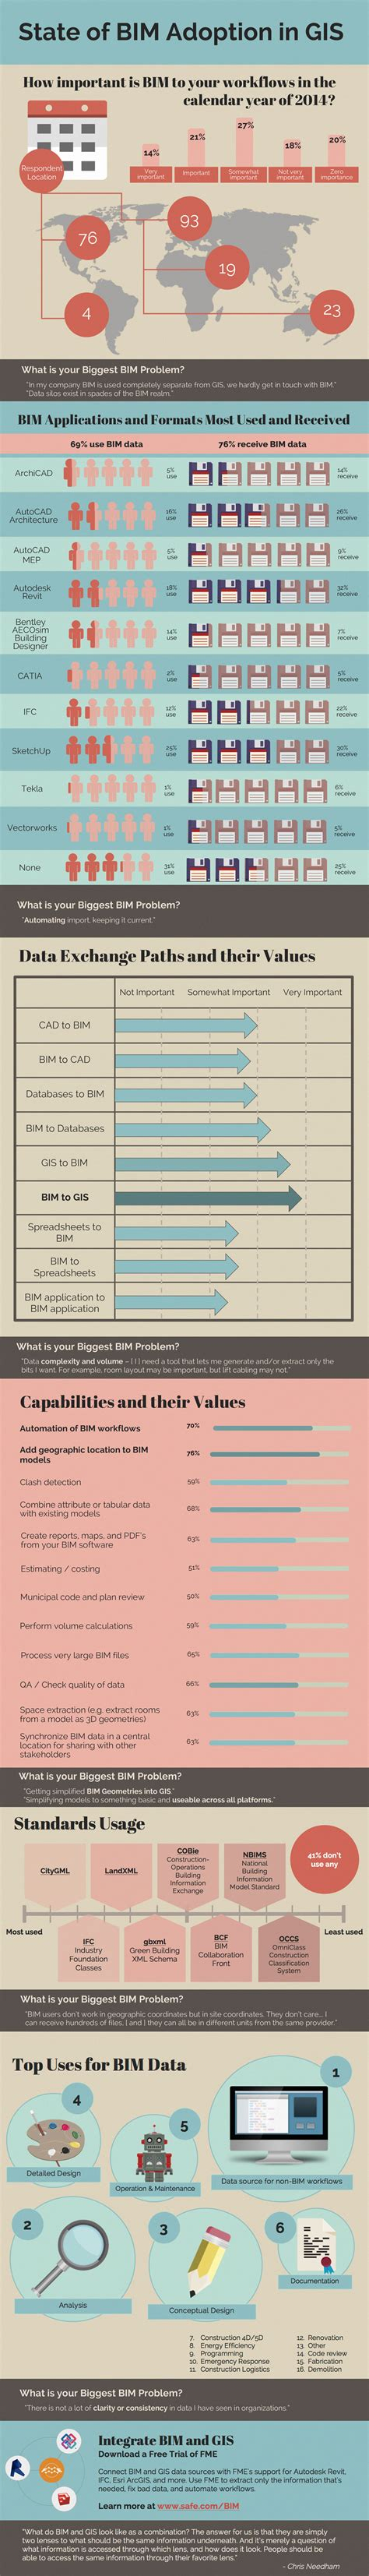 Gis Background Check Results Gis Users On Bim Adoption Infographic